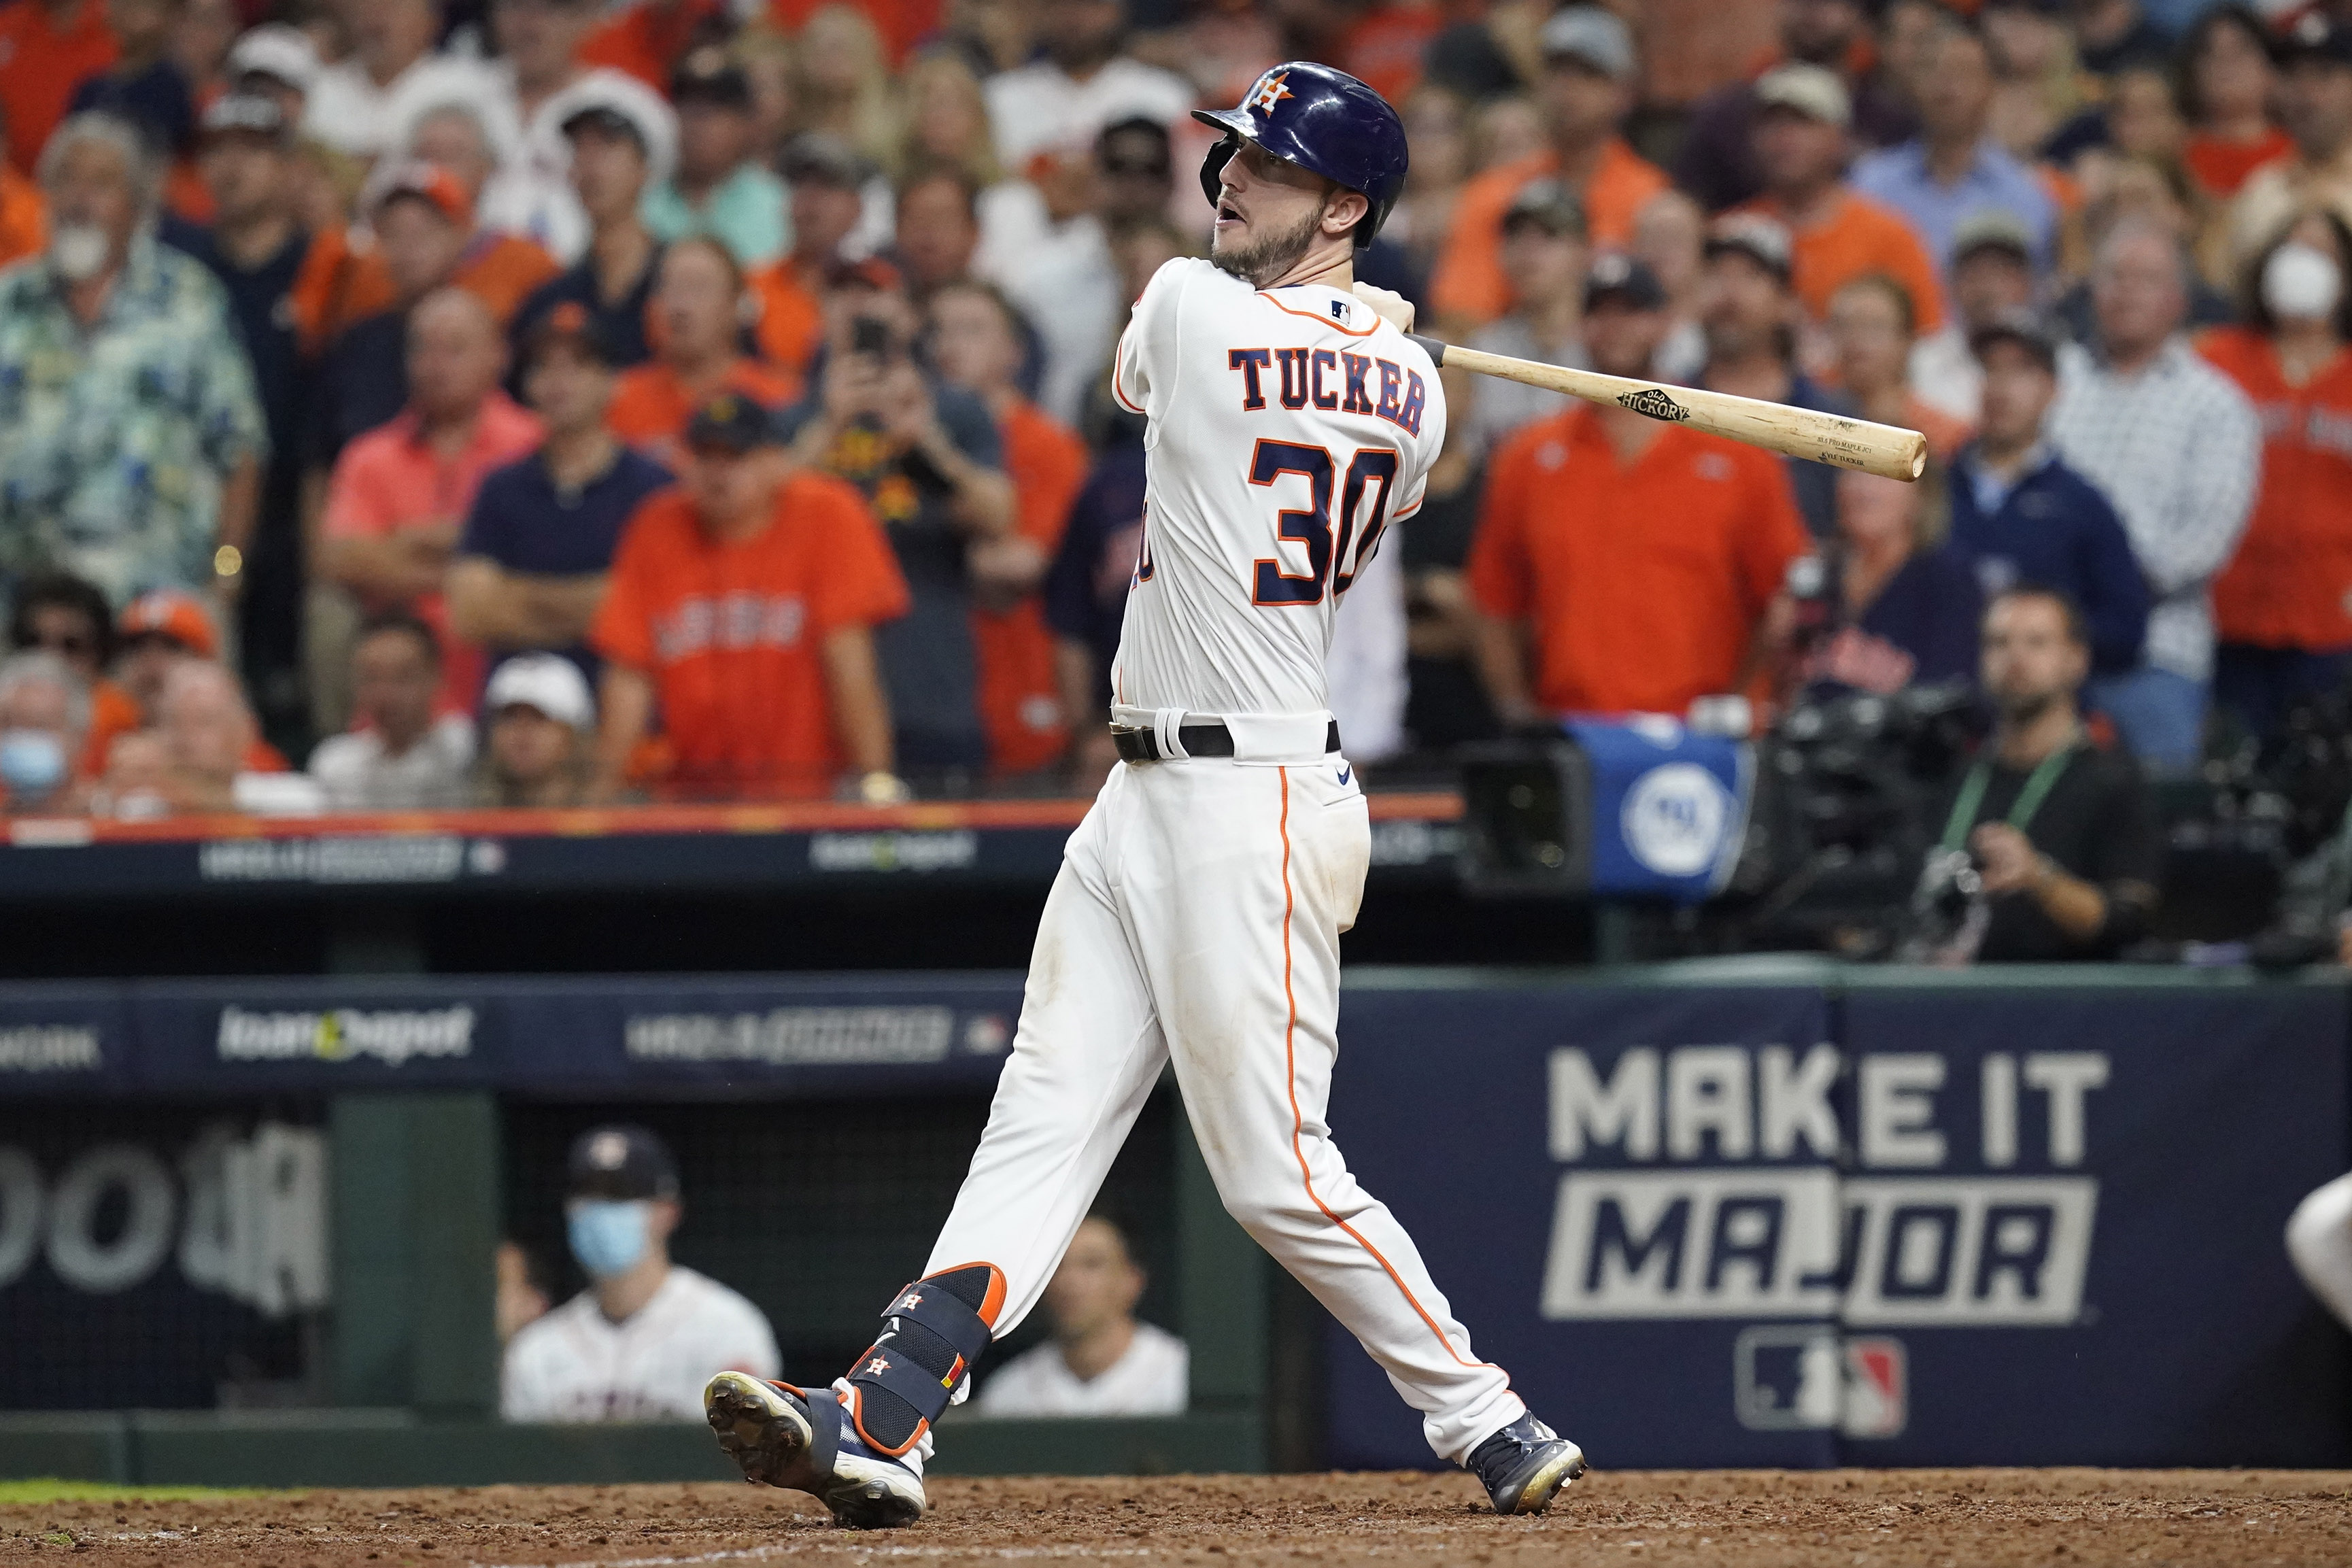 Houston Astros right fielder Kyle Tucker (30) hits a three run home run in the eighth inning against the Boston Red Sox during game six of the 2021 ALCS at Minute Maid Park.